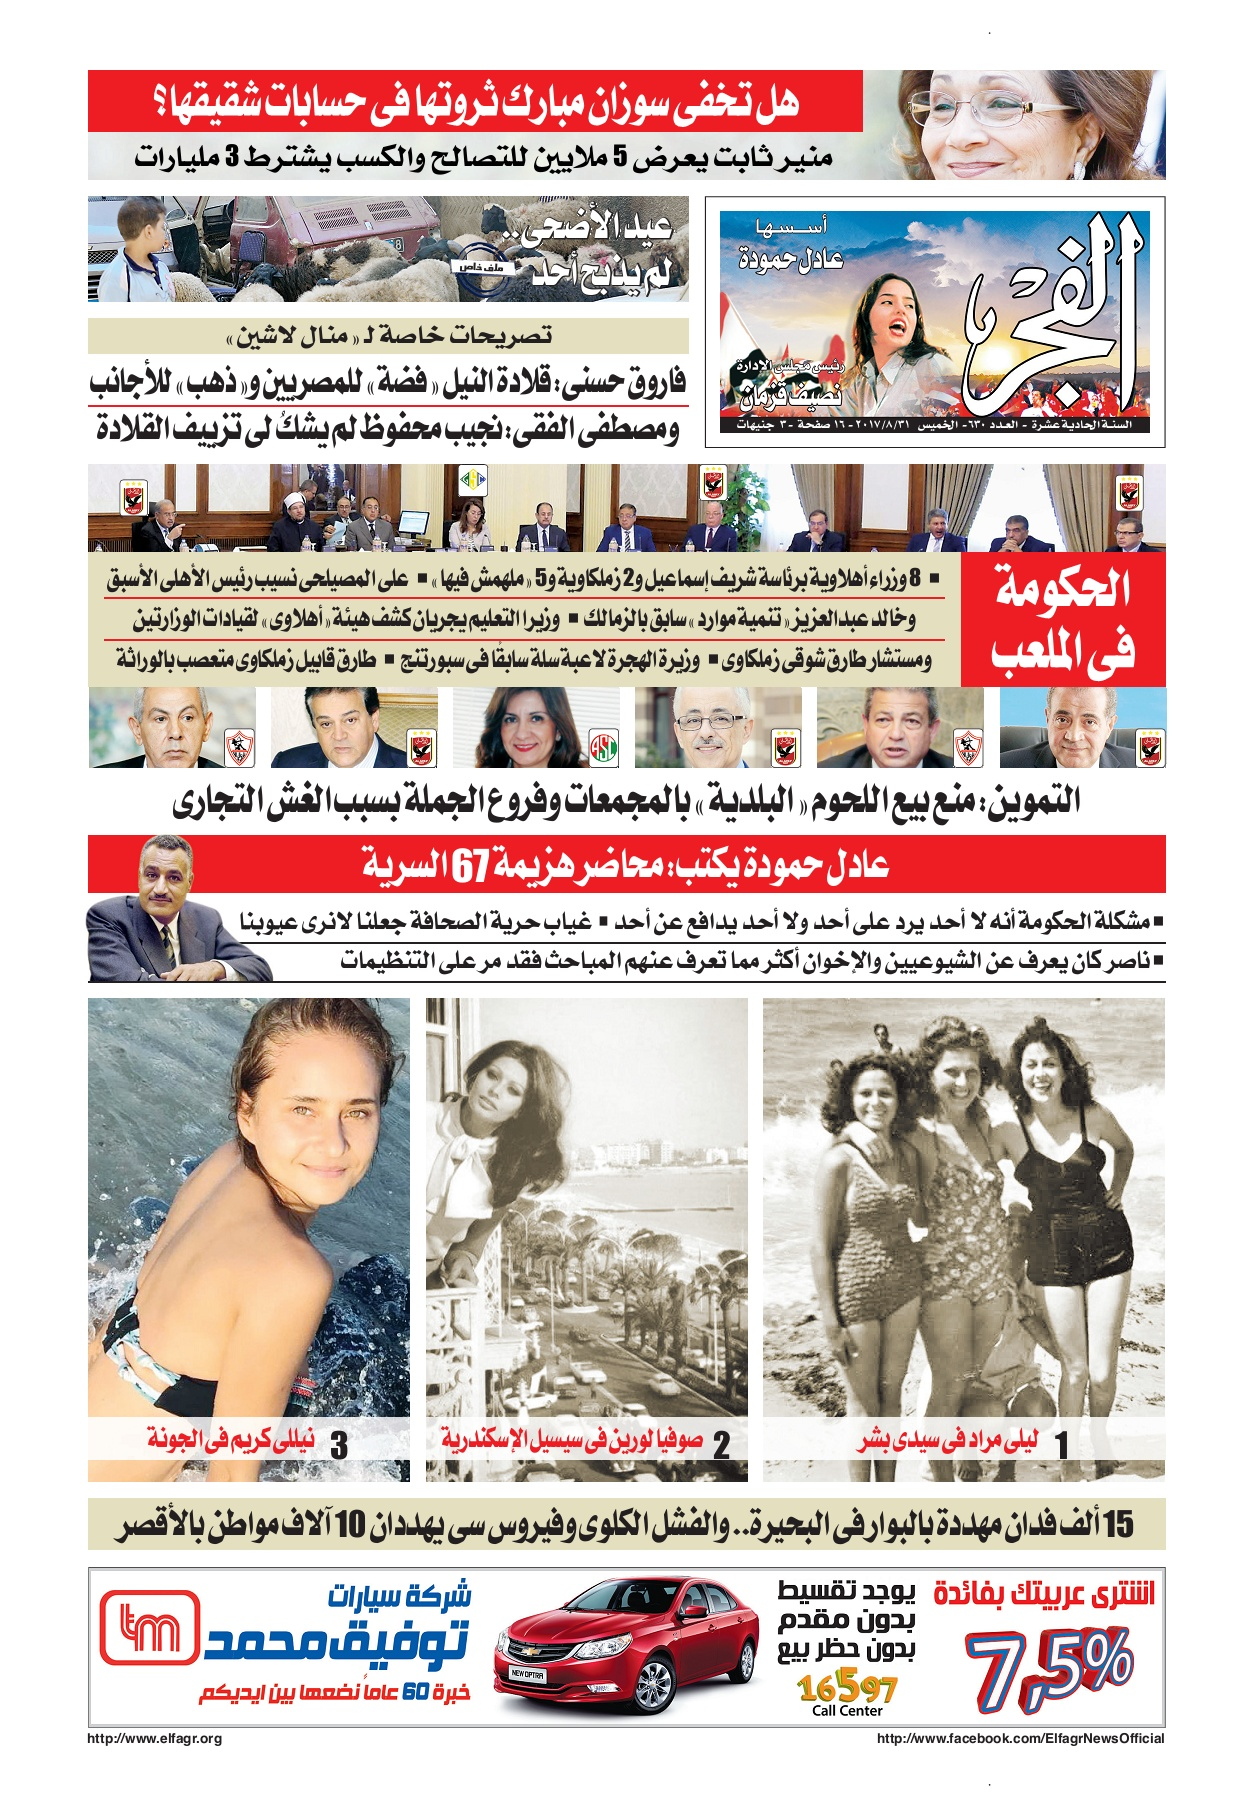 adefb68a9 Elfagr Newspaper Pages 1 - 16 - Text Version | AnyFlip